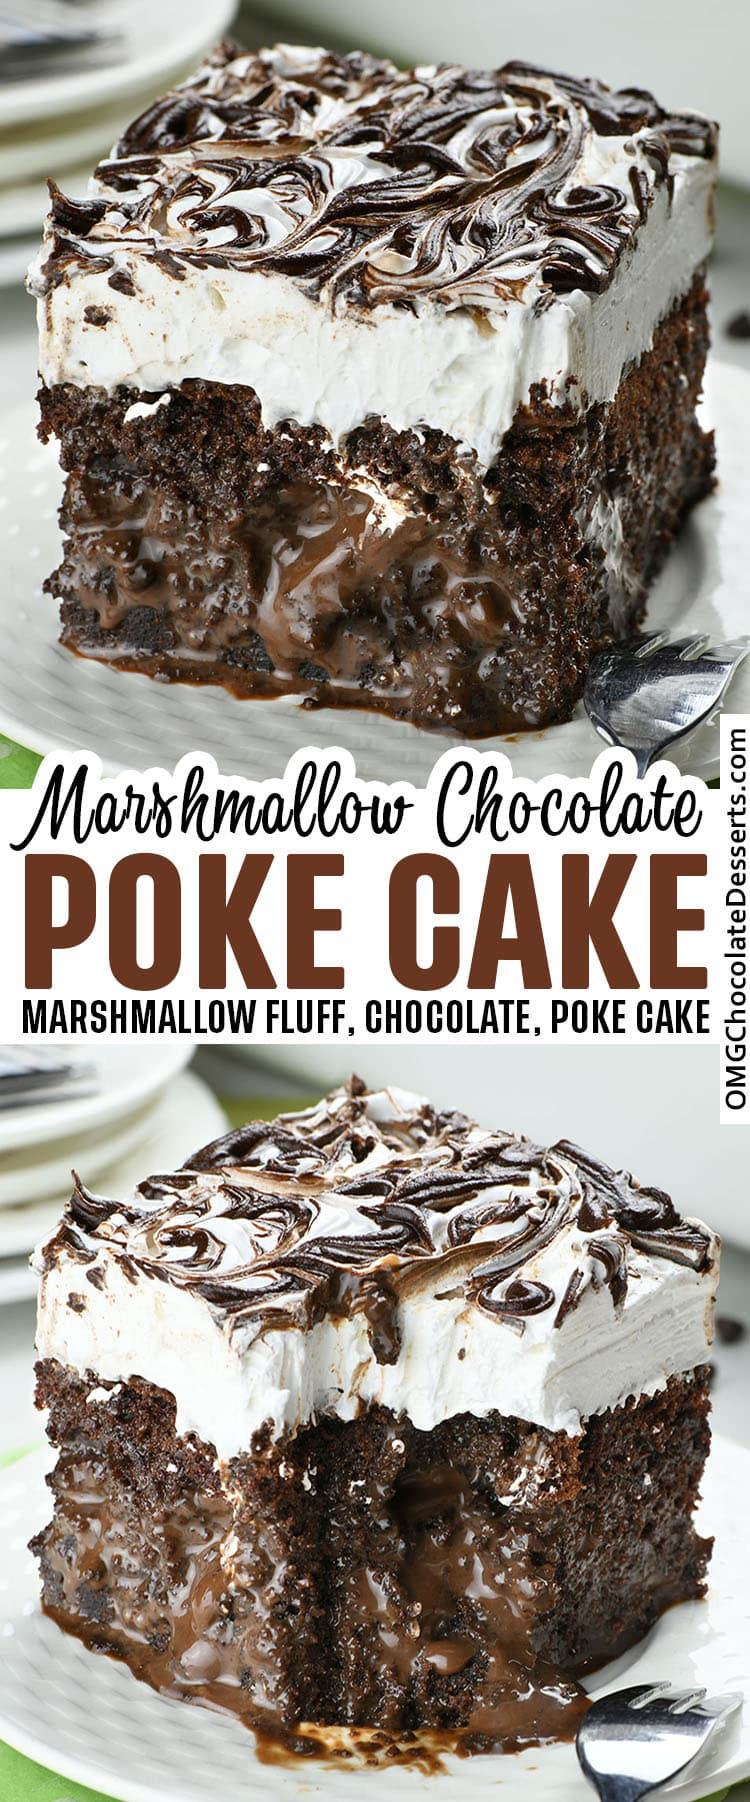 Two images of Marshmallow Chocolate Poke Cake with title beetween.